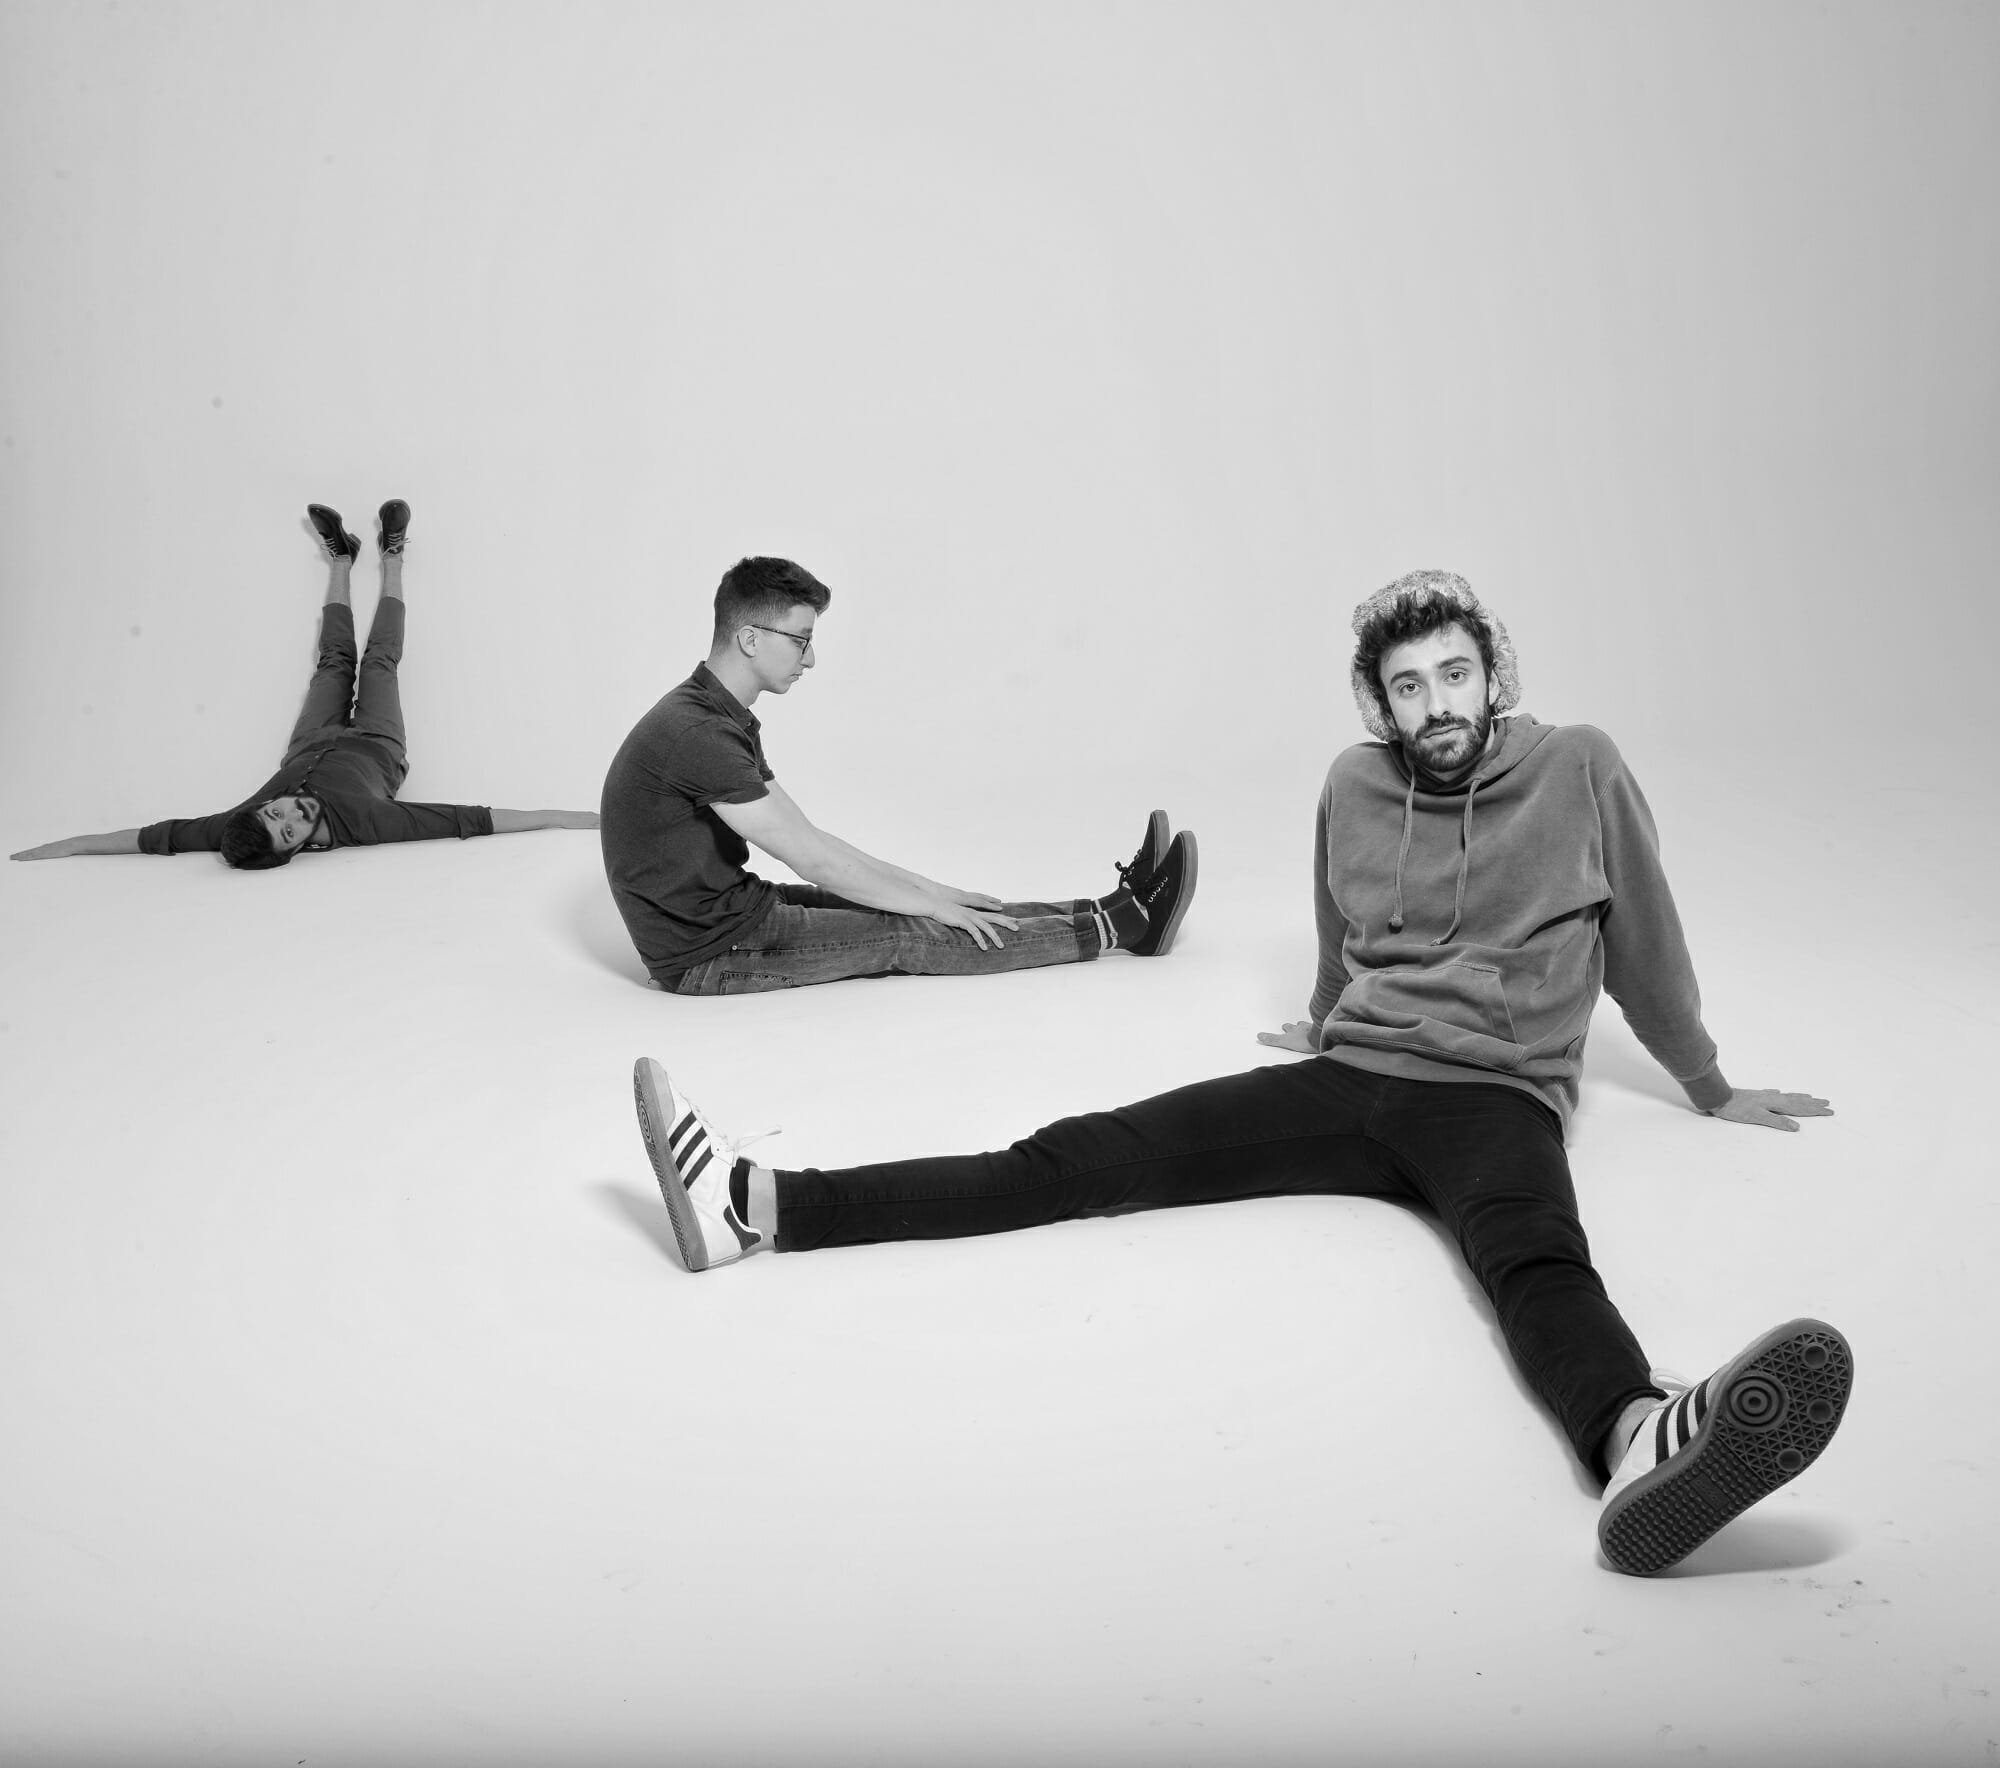 """EXCLUSIVE: AJR on what inspired their new single """"100 Bad Days"""""""